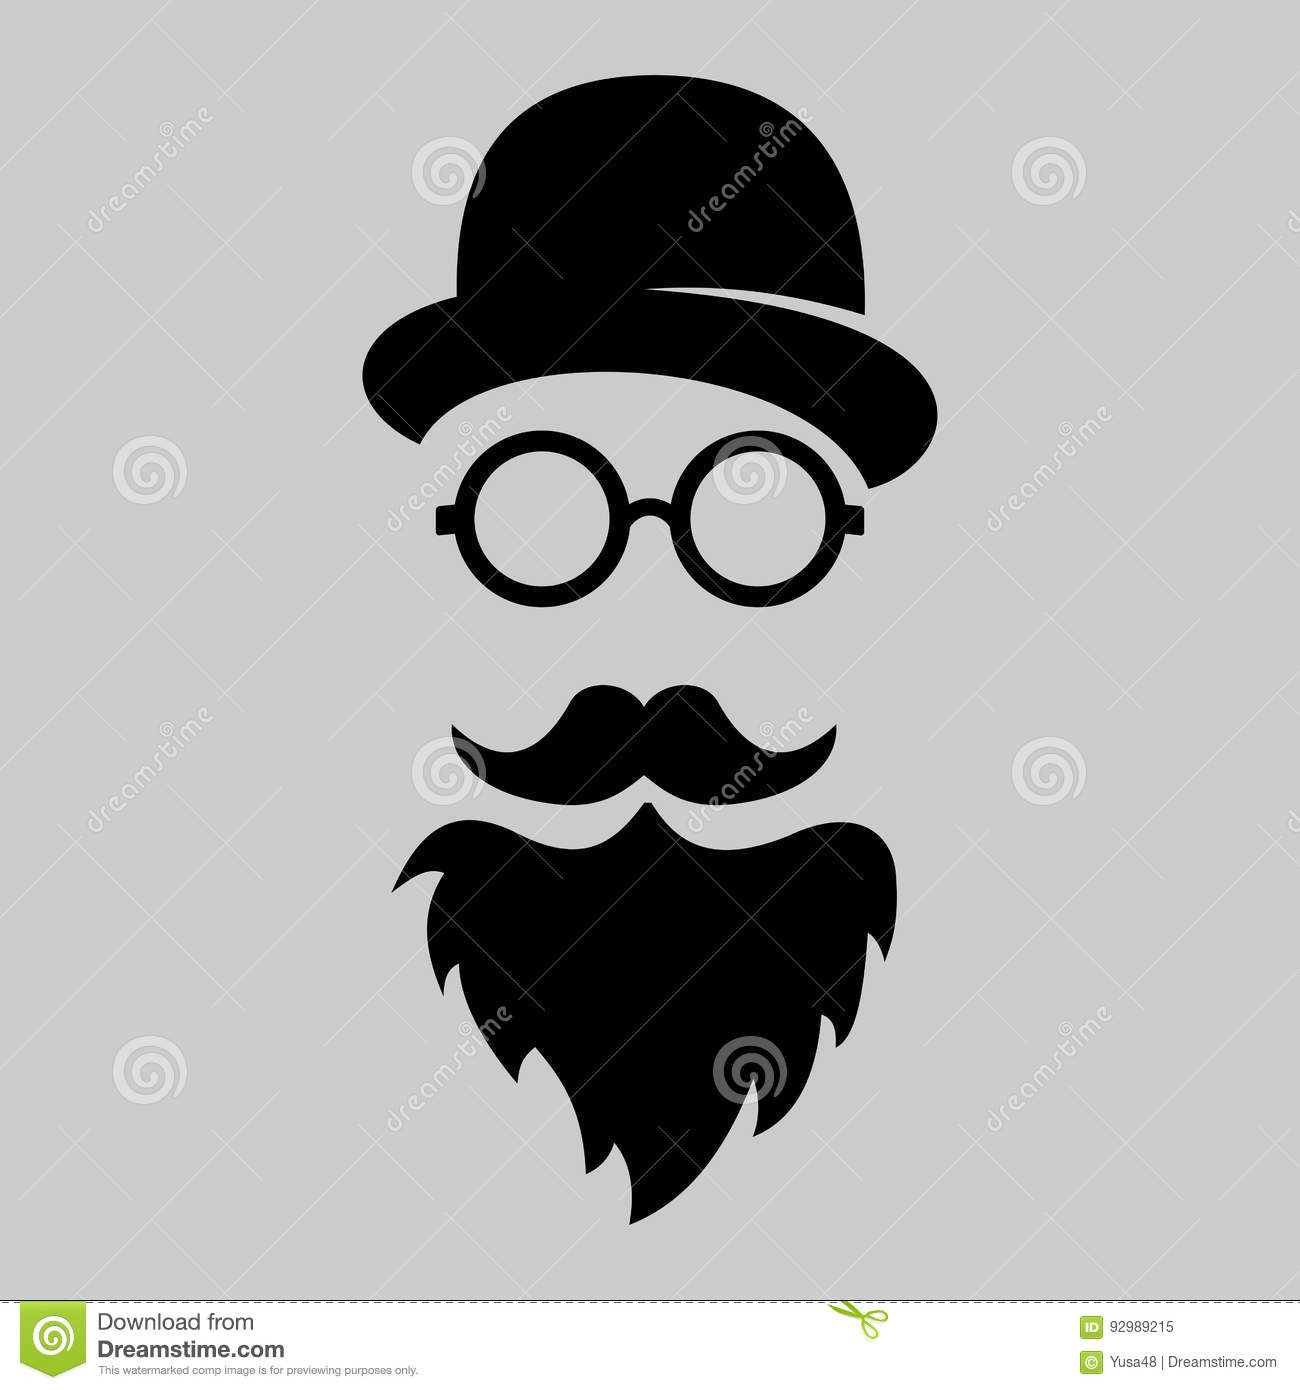 a3bde3b10 Vintage silhouette of bowler, mustaches, glasses. Vector illustration of  gentleman or hipster. Retro gentleman icon. Vector art. Logo template of  gentleman ...